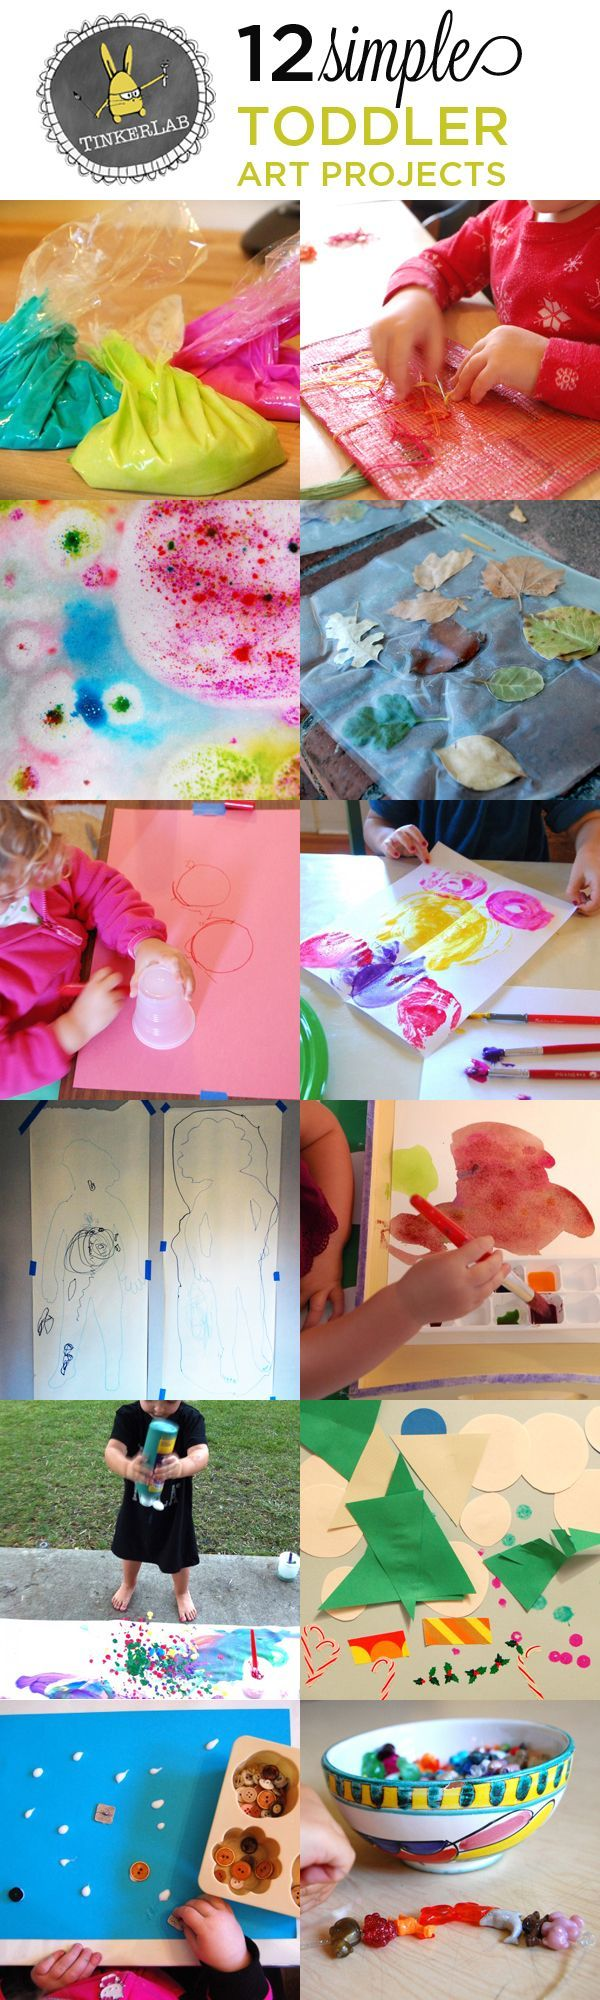 12 Simple and Fun Art Projects for Toddlers   TinkerLab.com